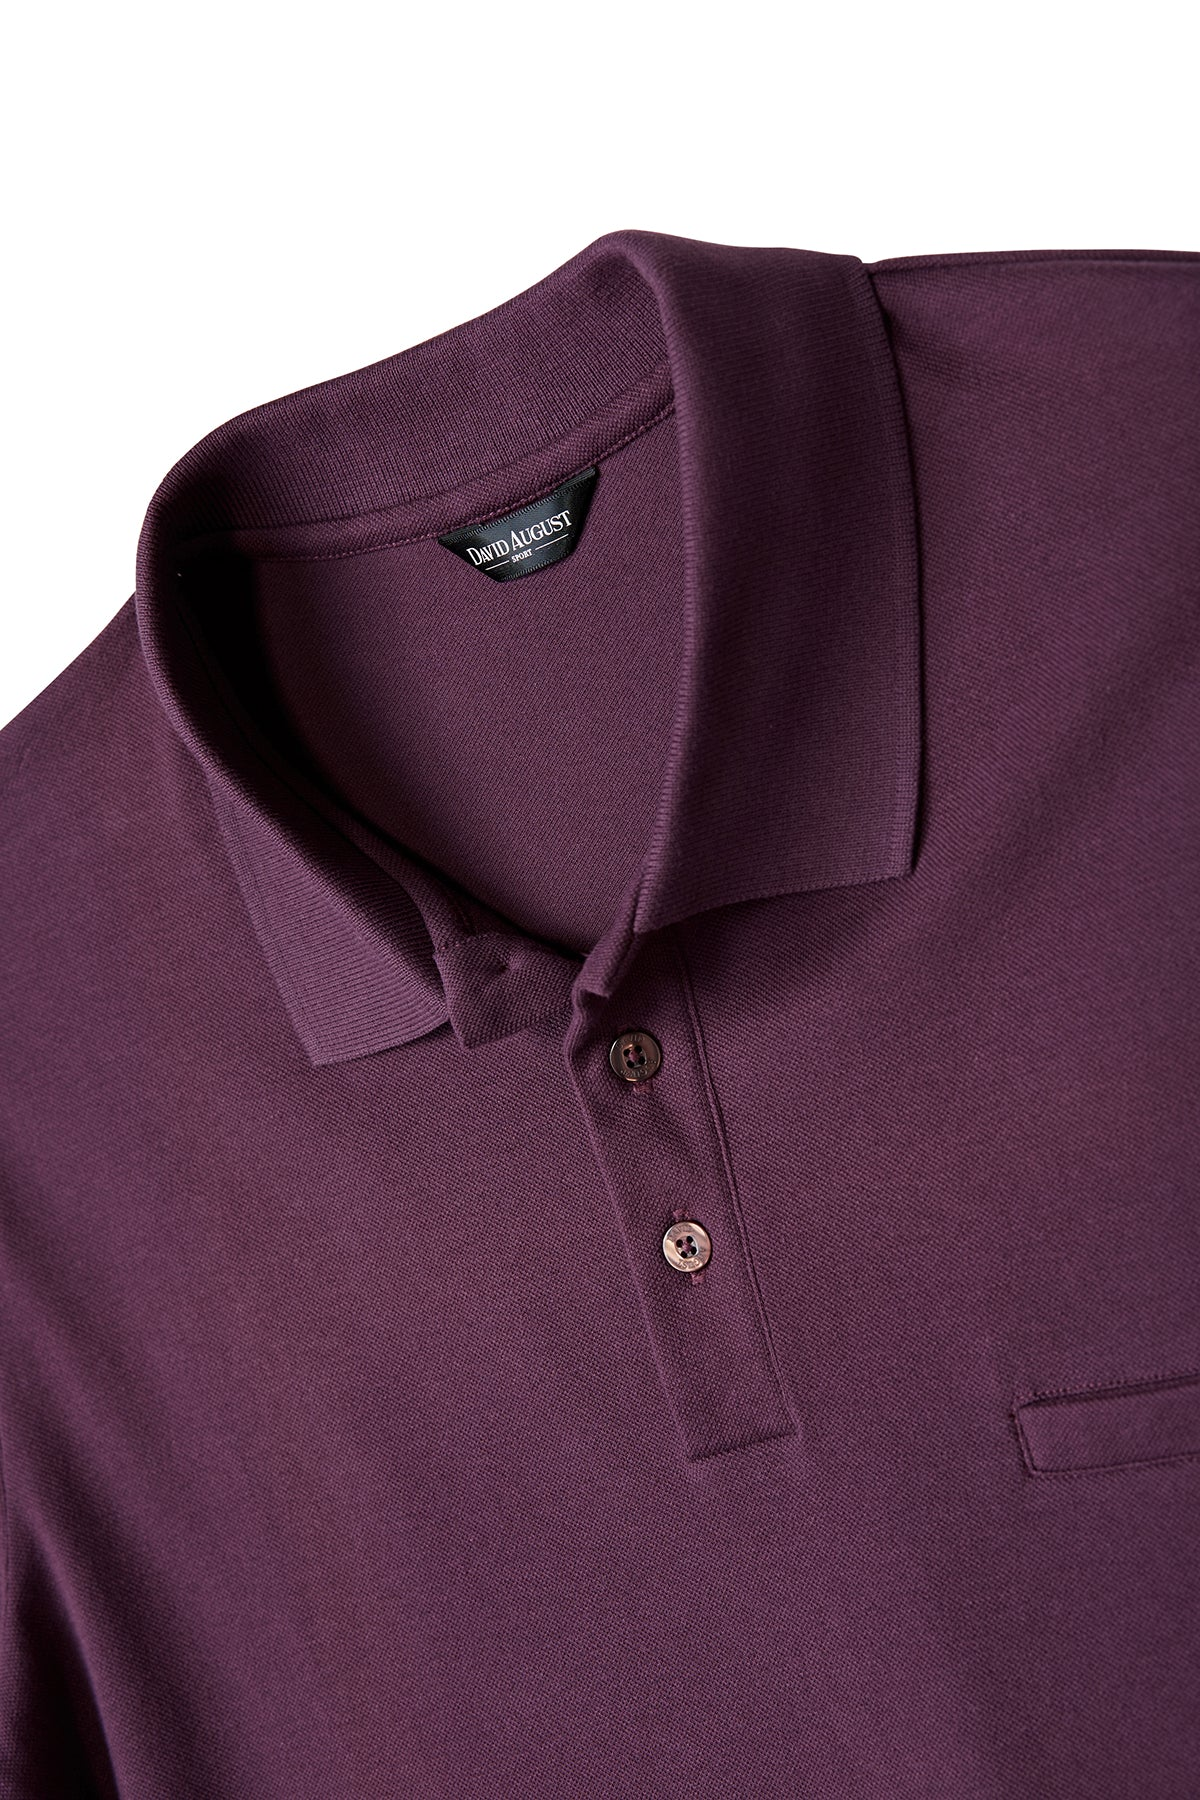 David August Pima Pique Cotton Polo in Dark Cranberry